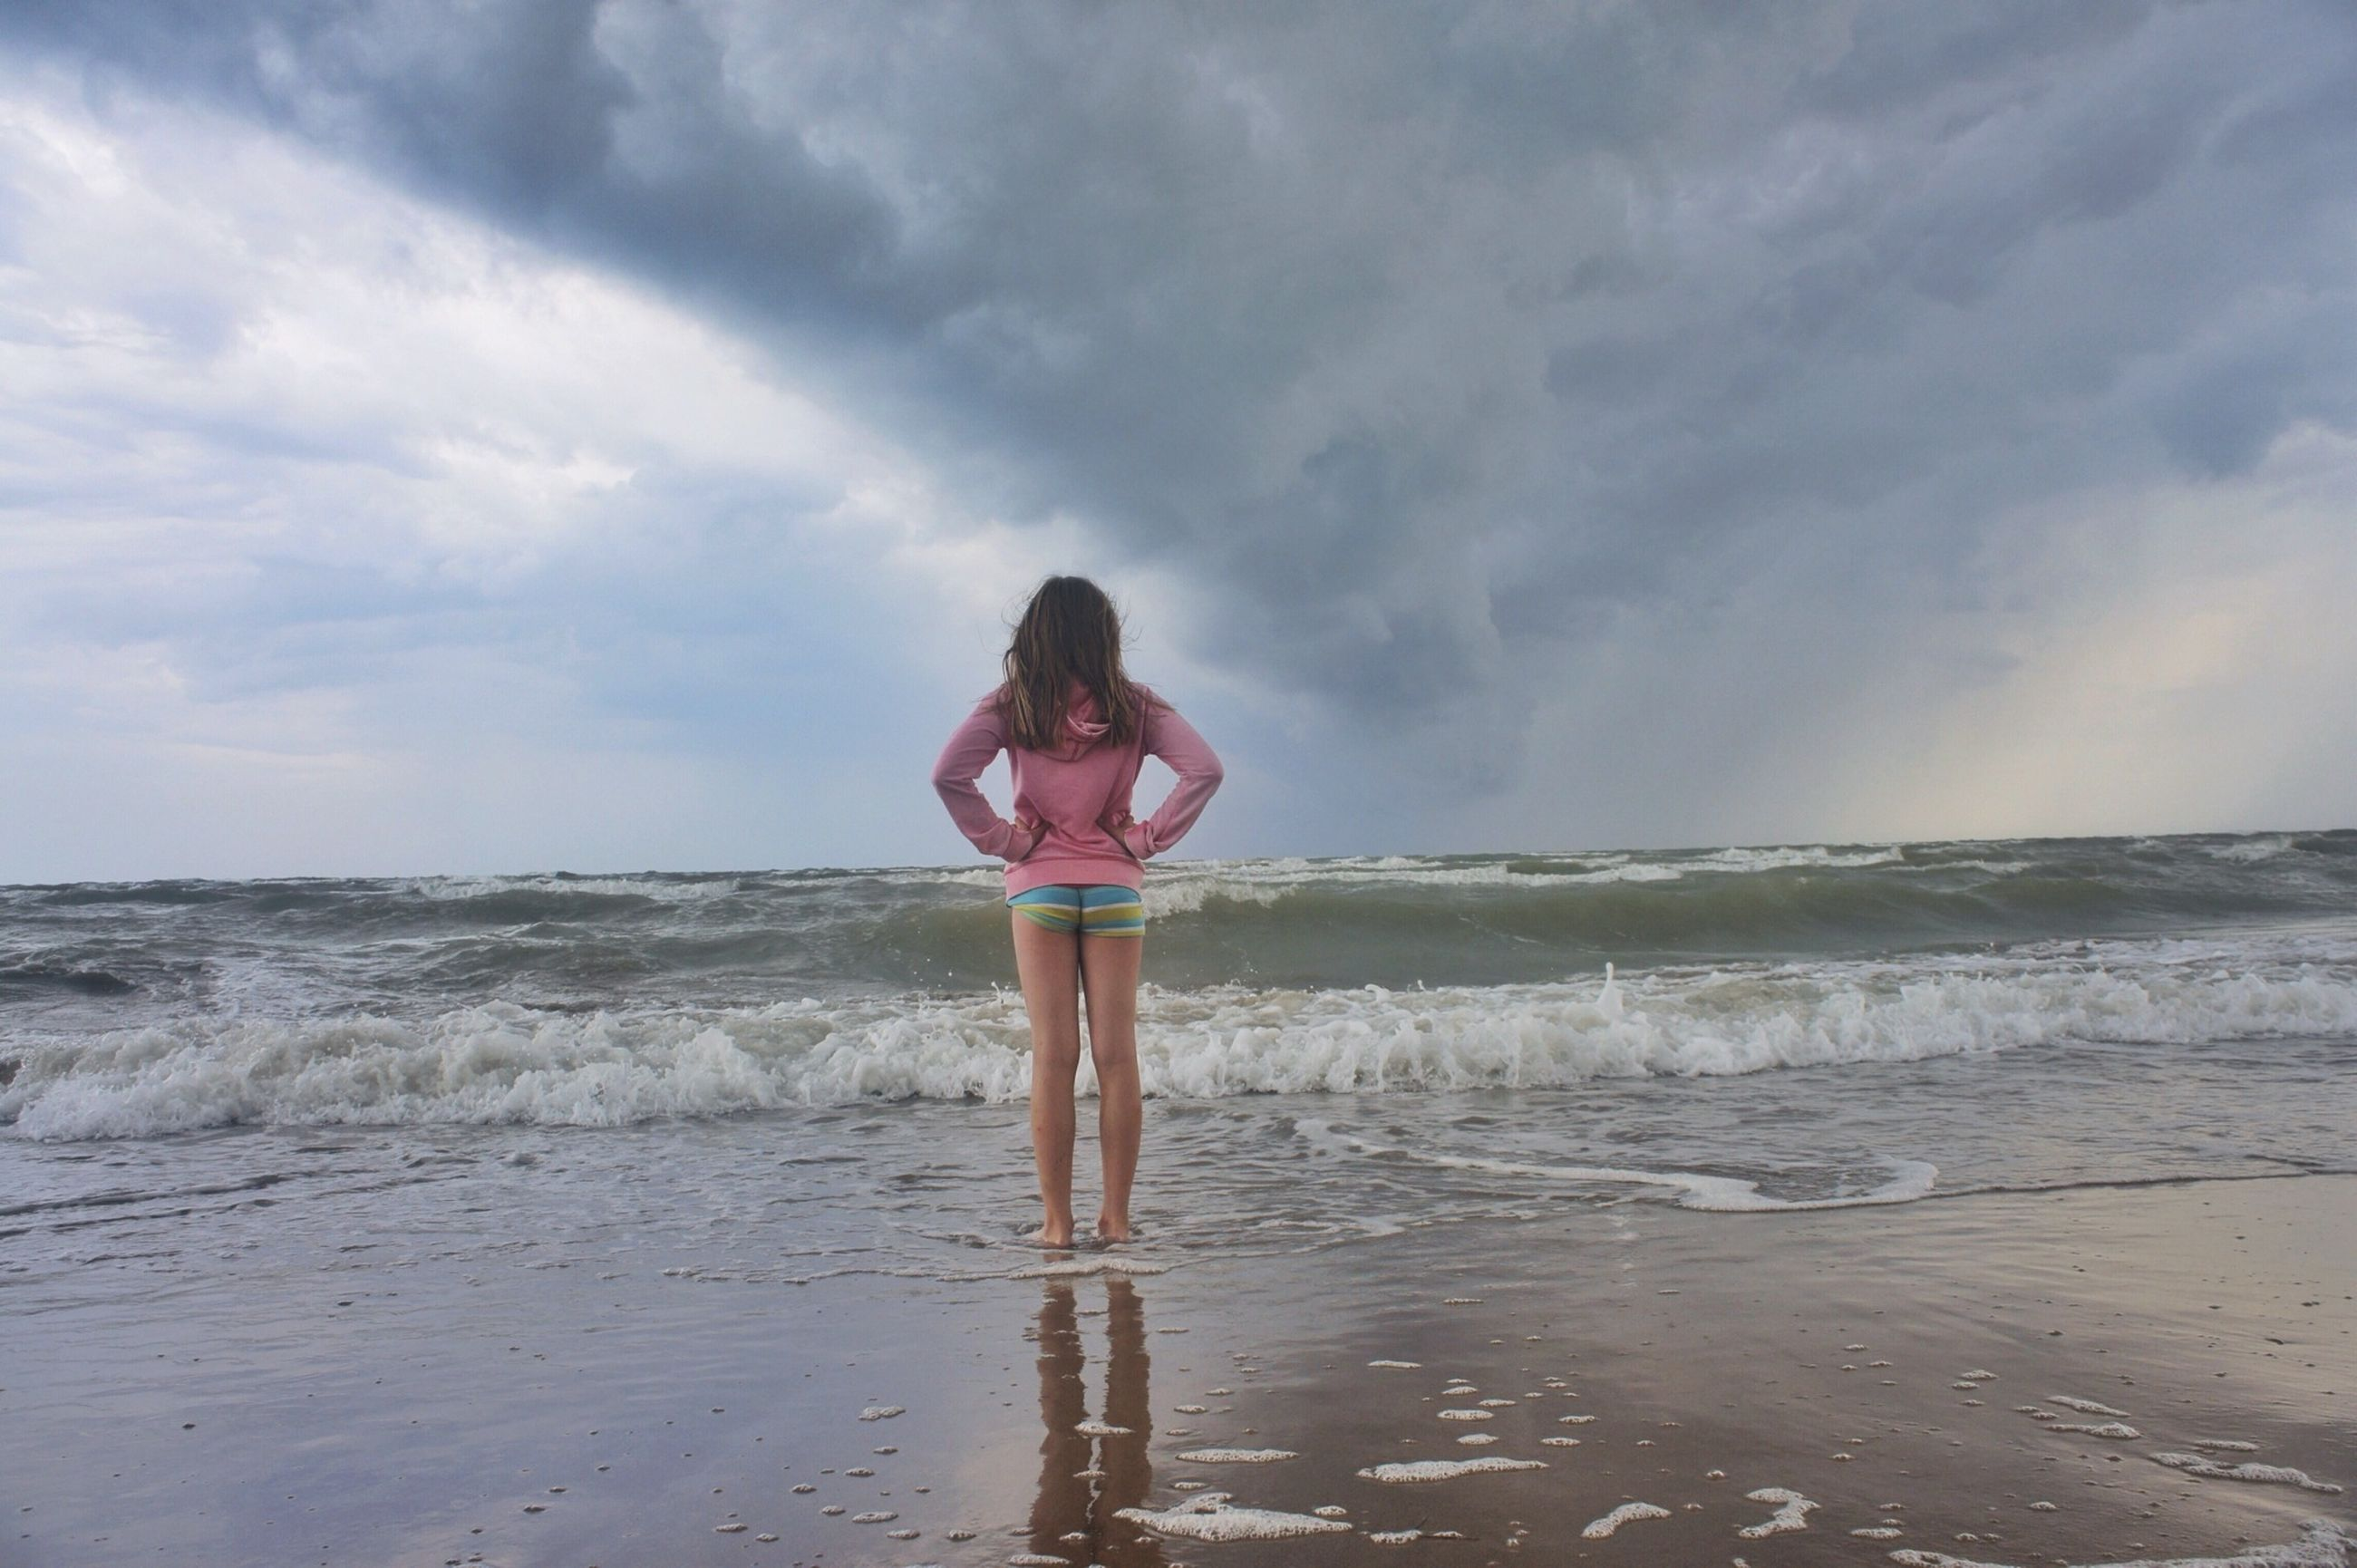 water, sky, full length, standing, sea, lifestyles, leisure activity, beach, cloud - sky, horizon over water, tranquility, casual clothing, tranquil scene, shore, scenics, nature, rear view, beauty in nature